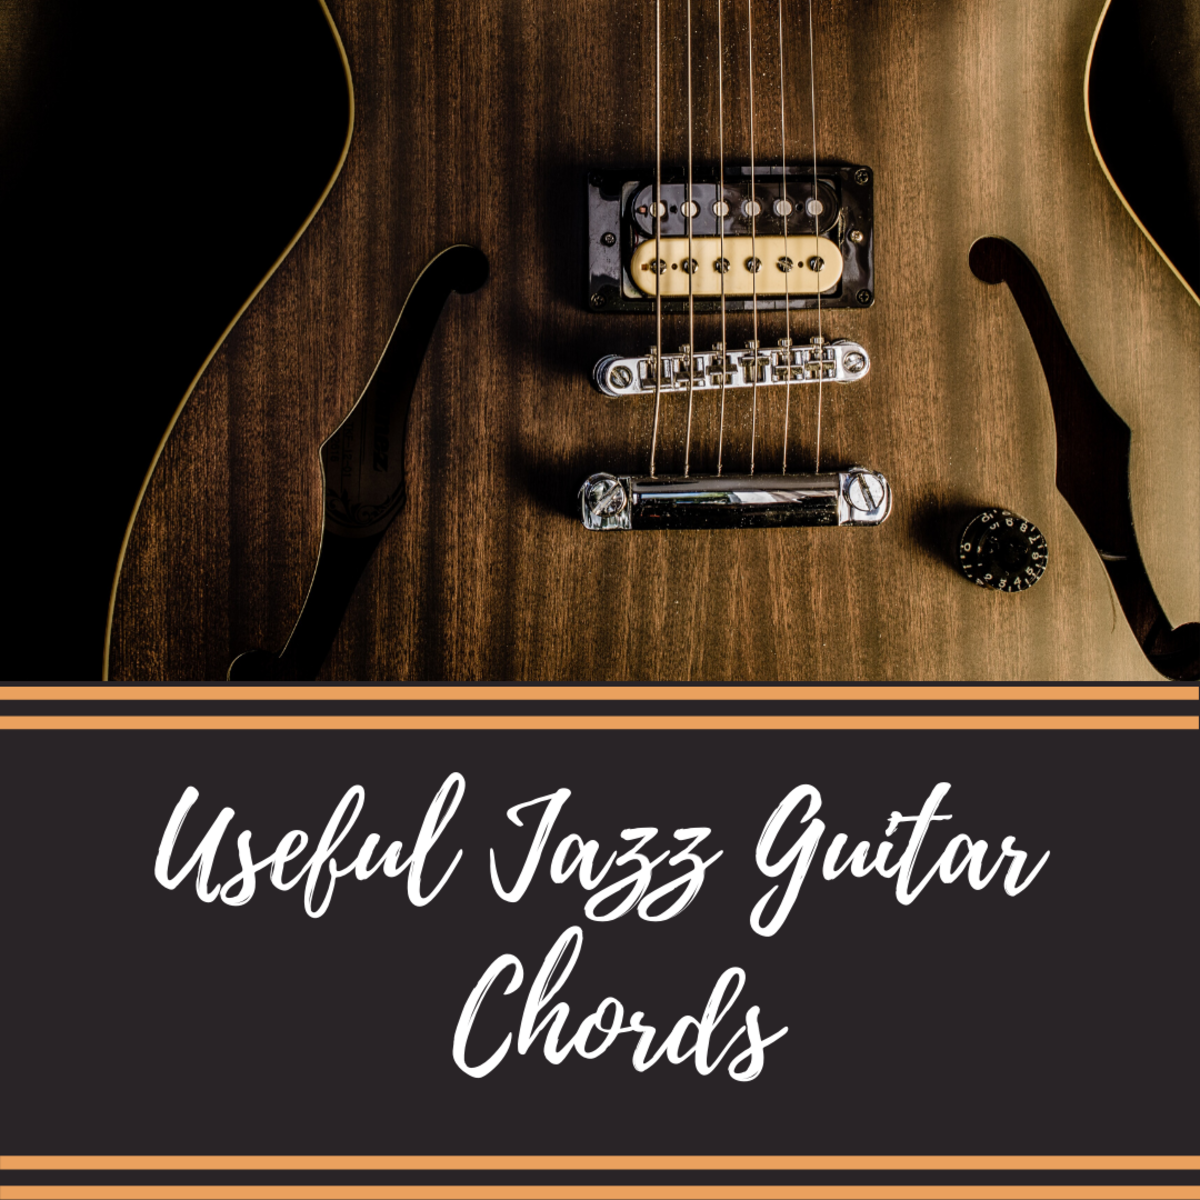 Useful Jazz Guitar Chords